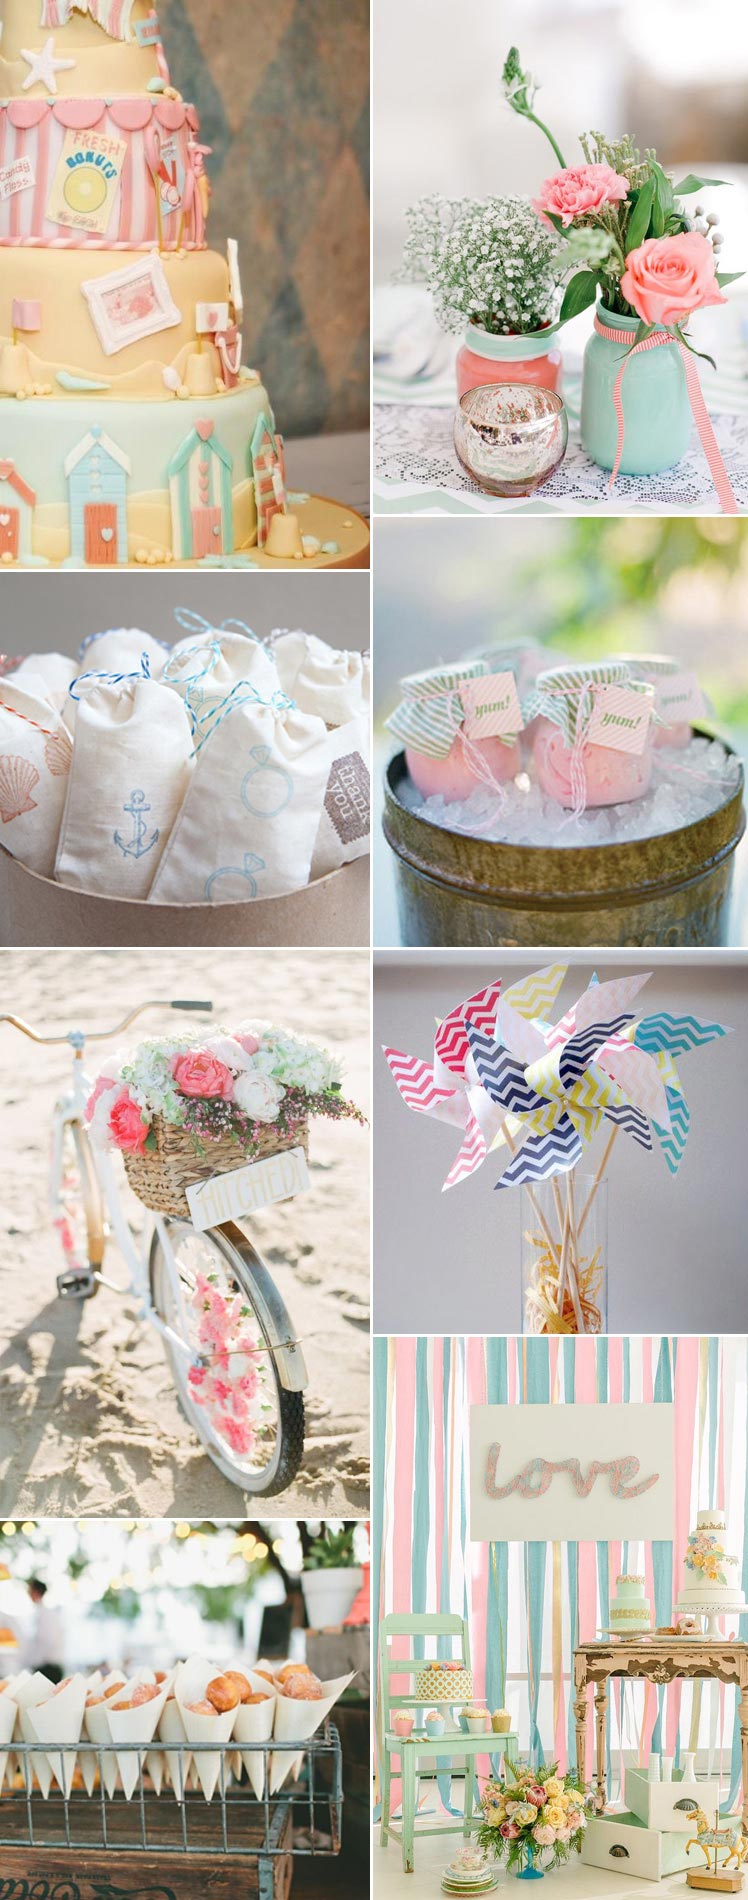 Traditional seaside wedding inspiration